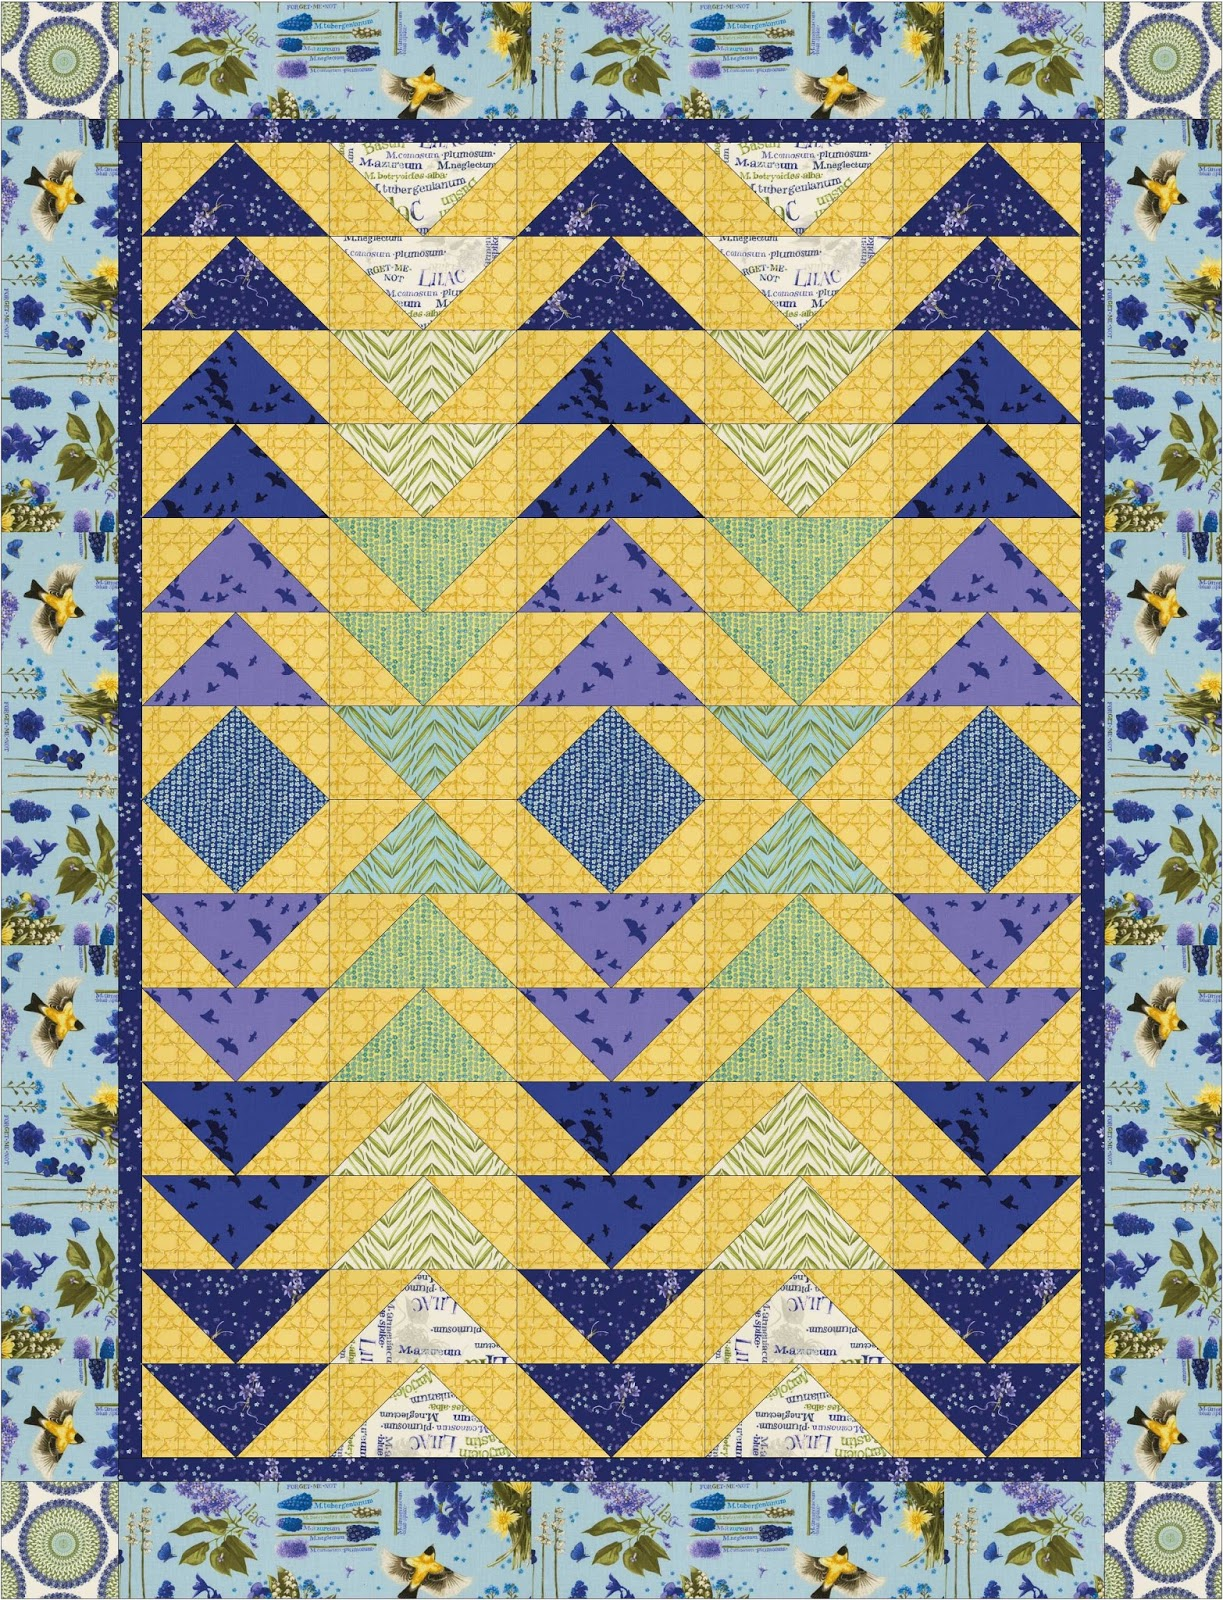 Quilt Inspiration: Free Pattern Day! Flying Geese Quilts